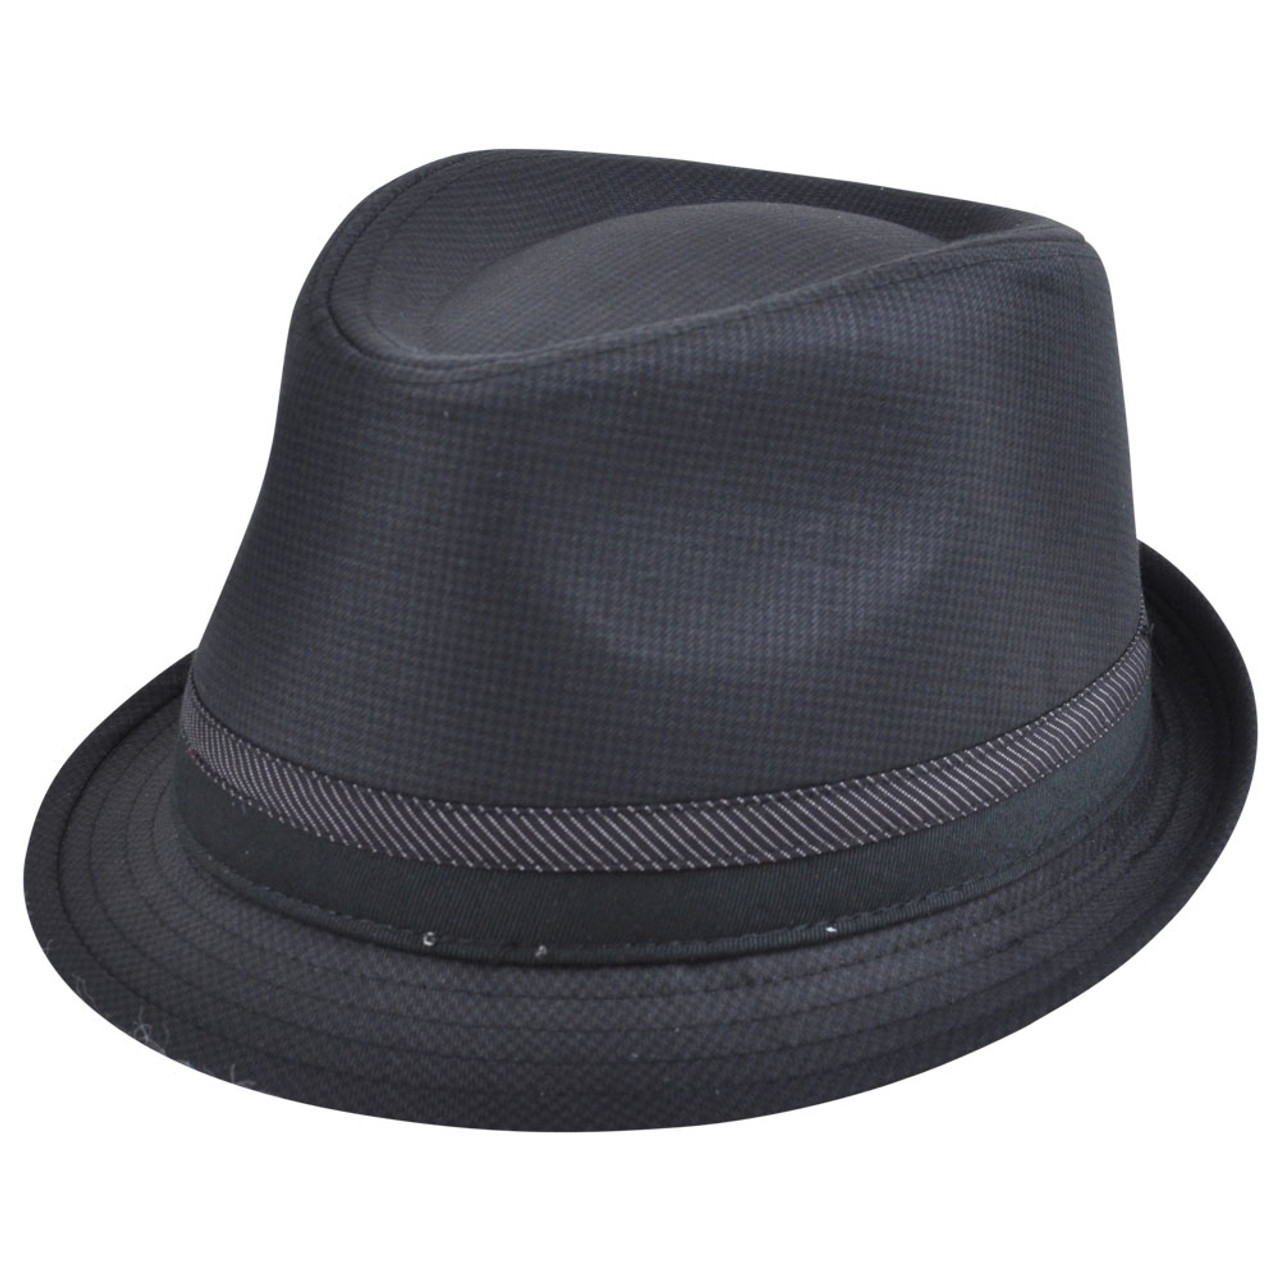 ab8520ed92024 Explicit Fedora Gangster Diamond Top Small Medium Pimp Hat Trilby Patterned  Blk - Cap Store Online.com